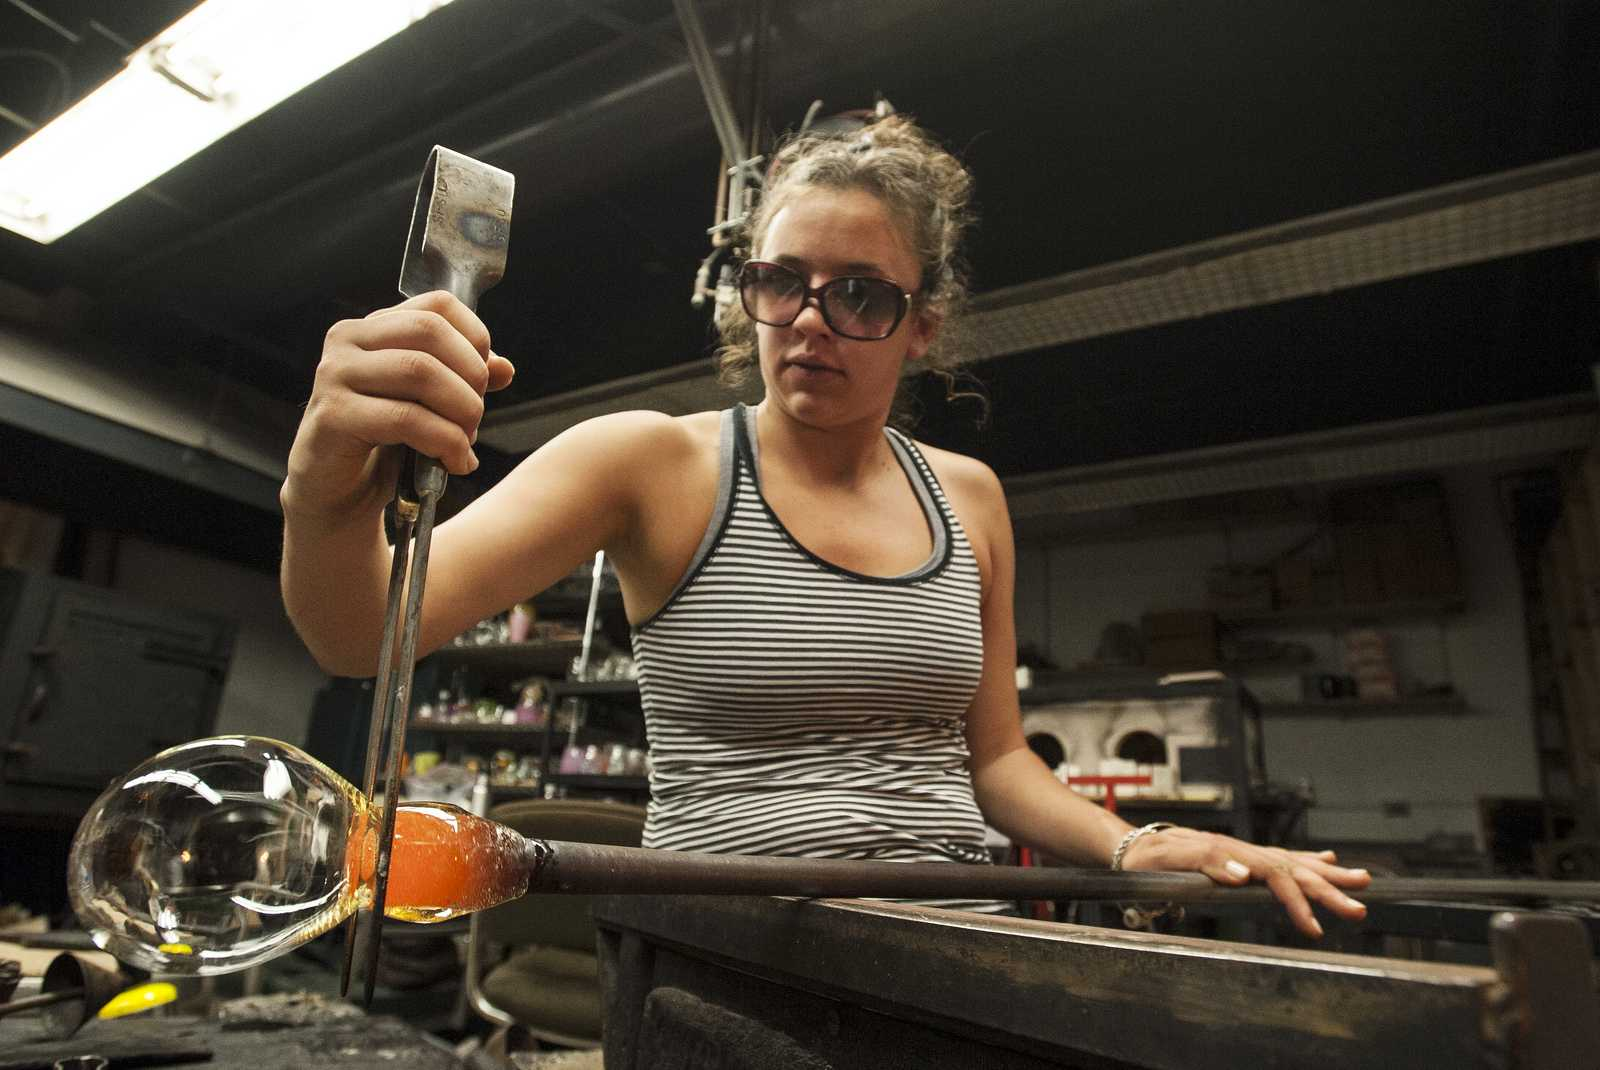 Rachel Beck uses a Jack to shape a piece of glasswork in the Fine Arts building Tuesday, Sept. 17, 2013. Photo by Benjamin Kamps / Xpress